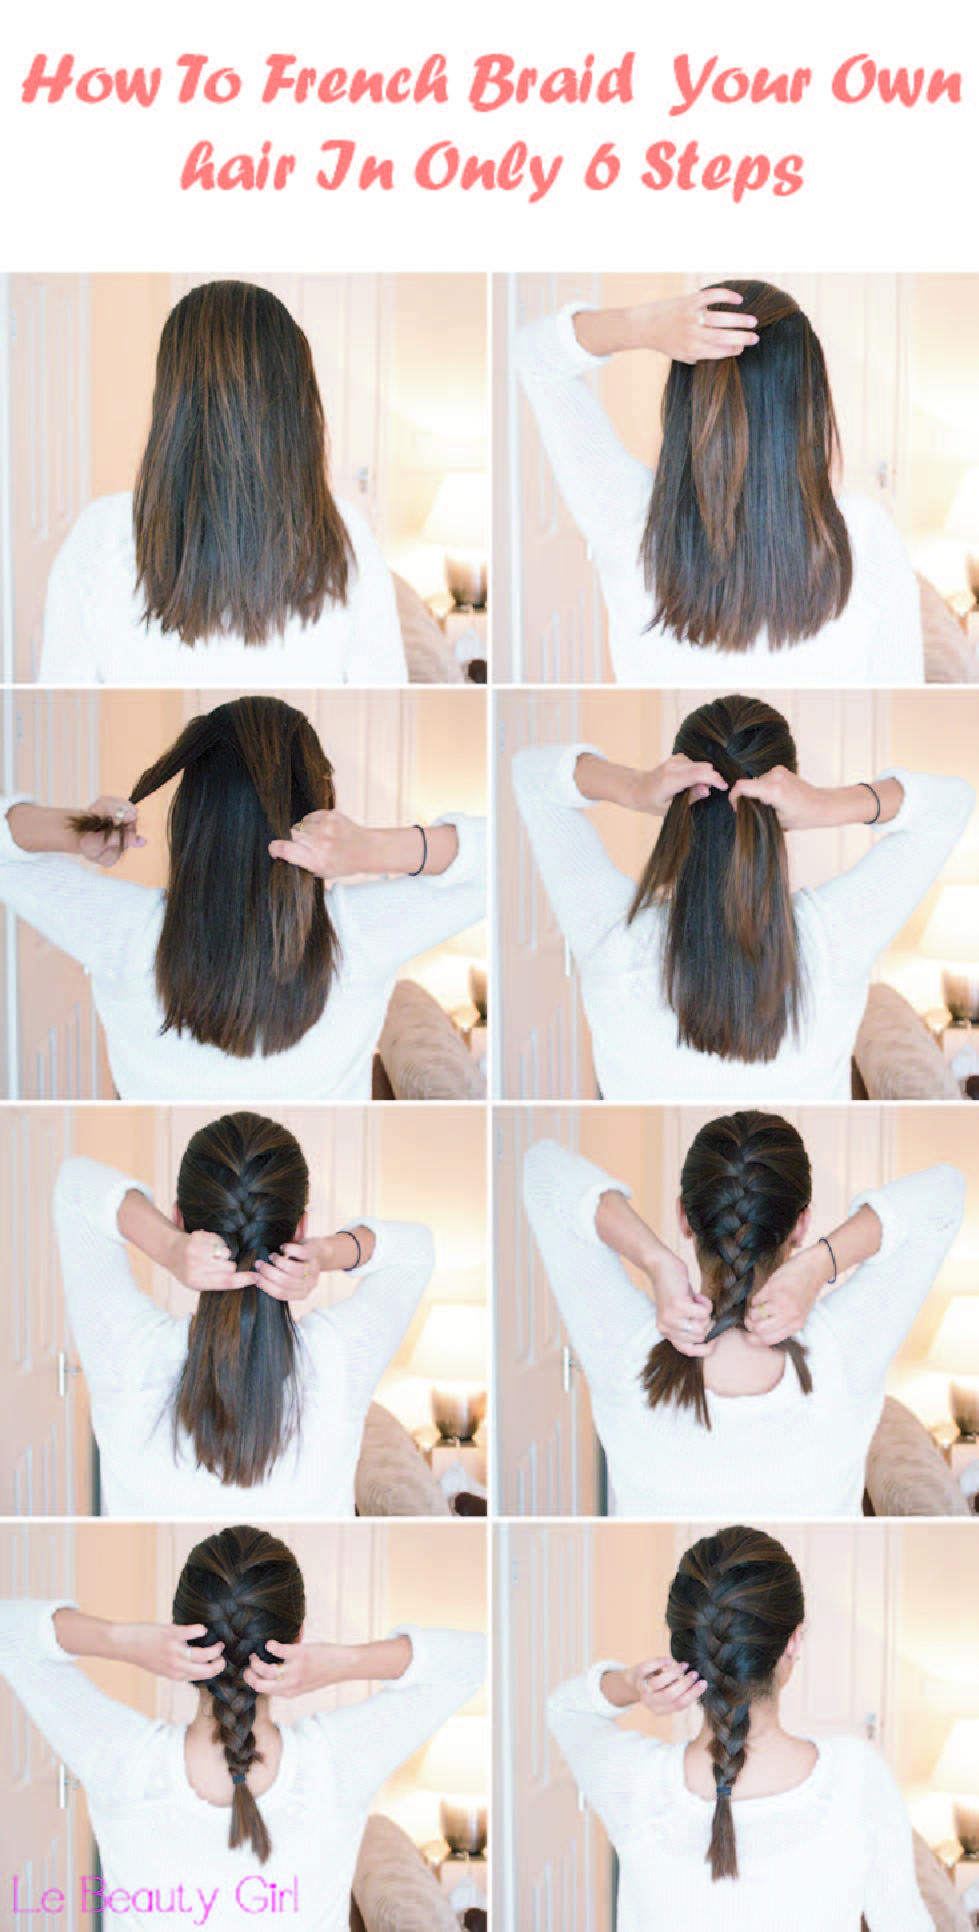 Fancy French Braids Want To Know How To French Braid Your Hair French Braids Are Very Easy T Long Hair Styles Medium Short Hair Braided Hairstyles Tutorials